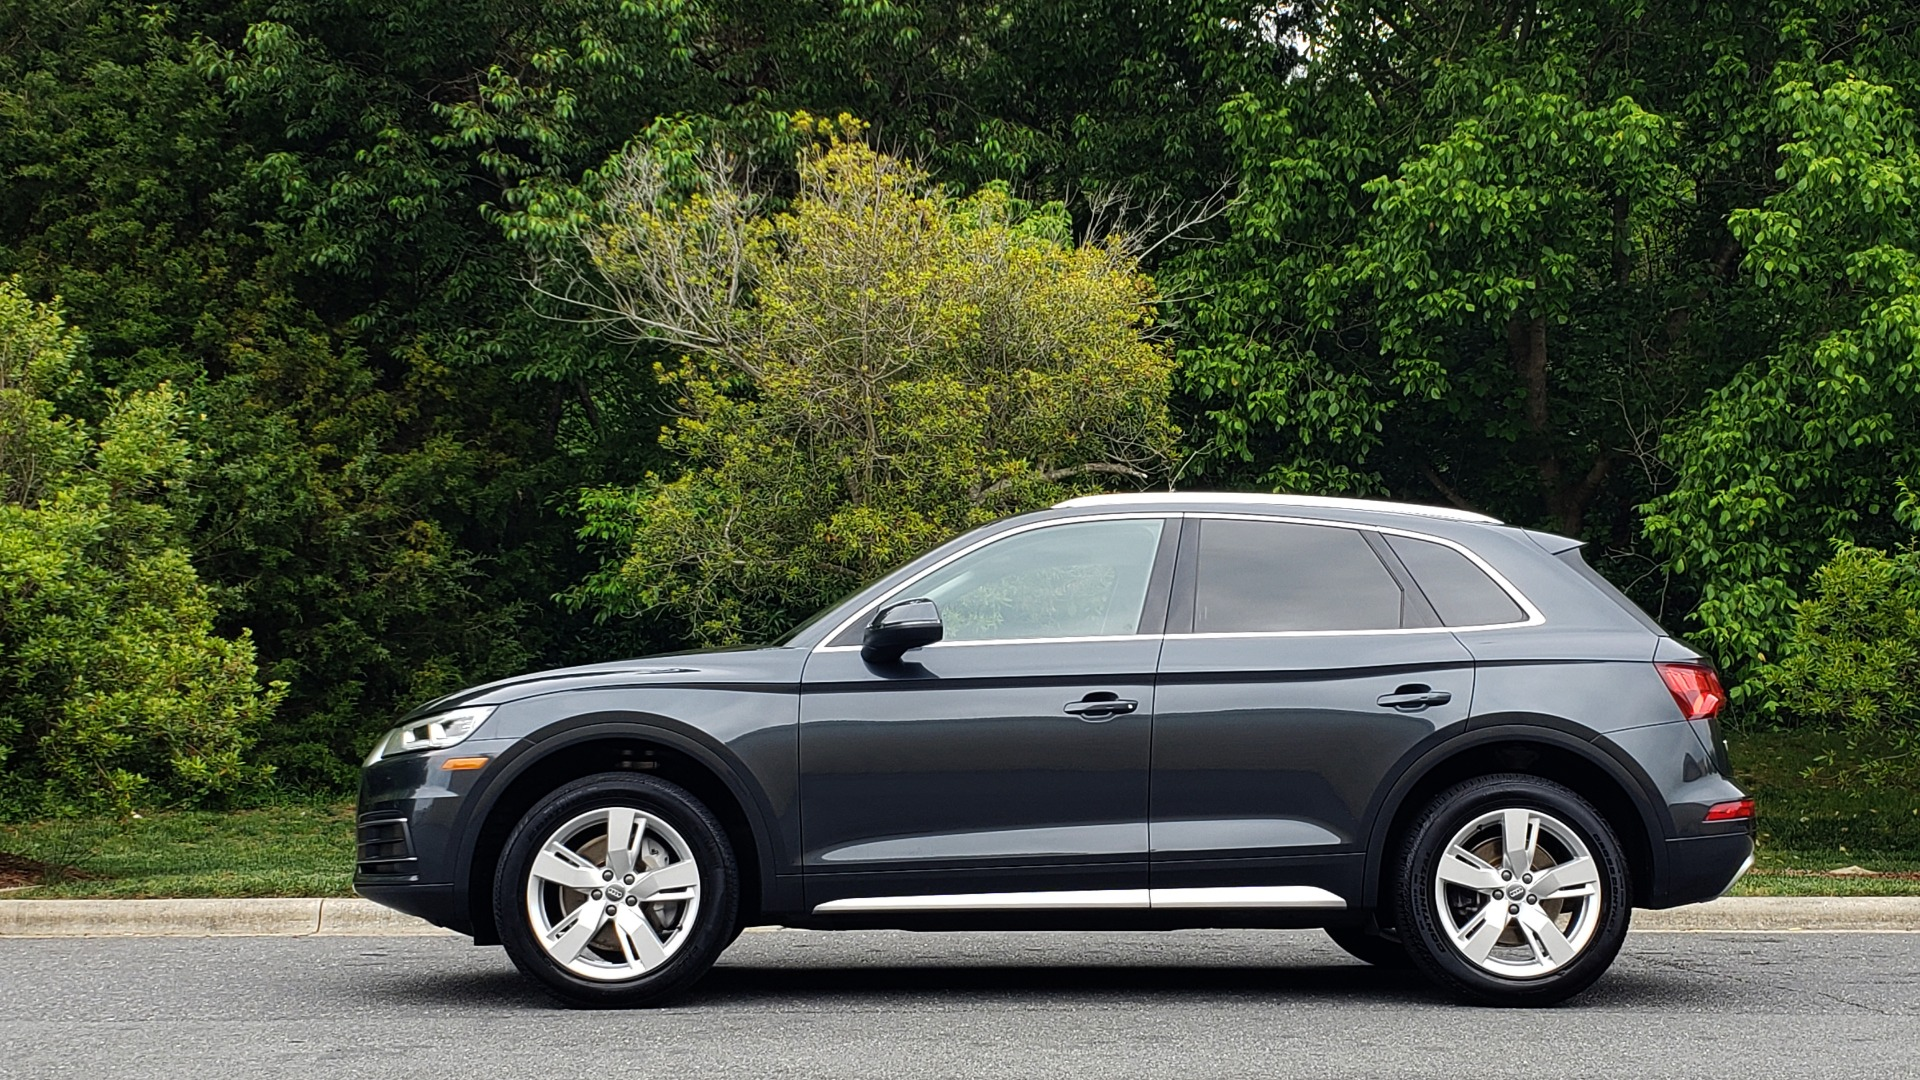 Used 2018 Audi Q5 PREMIUM PLUS / S-TRONIC / NAV / PANO-ROOF / PARK SYS PLUS for sale Sold at Formula Imports in Charlotte NC 28227 2